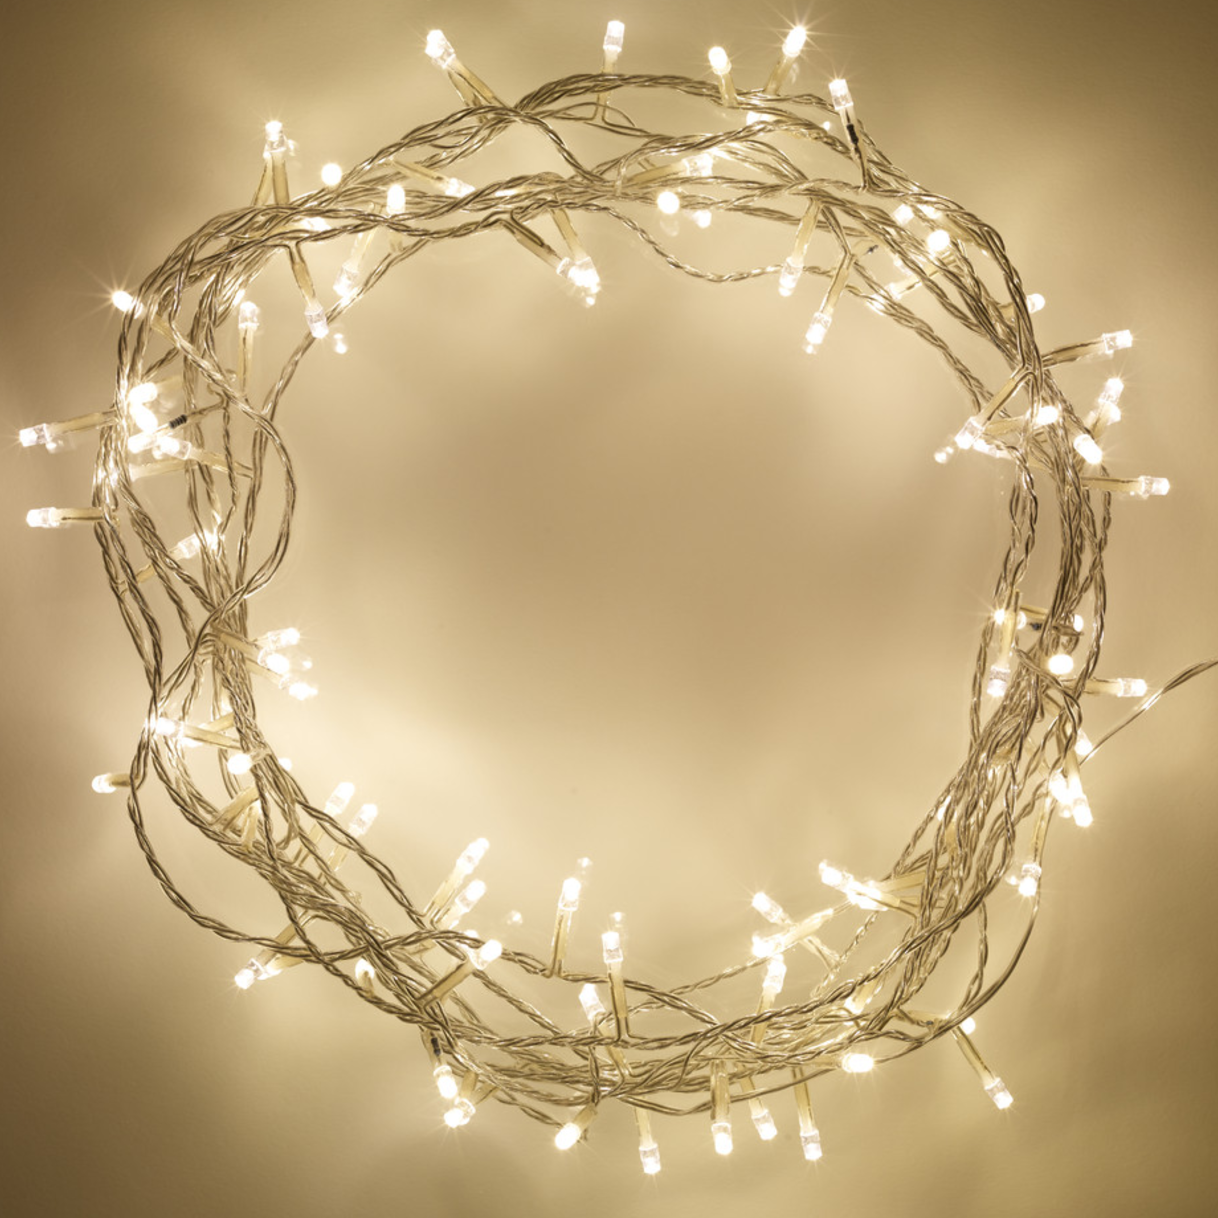 10 Super Simple Cosy Upgrades For Your Home This Winter